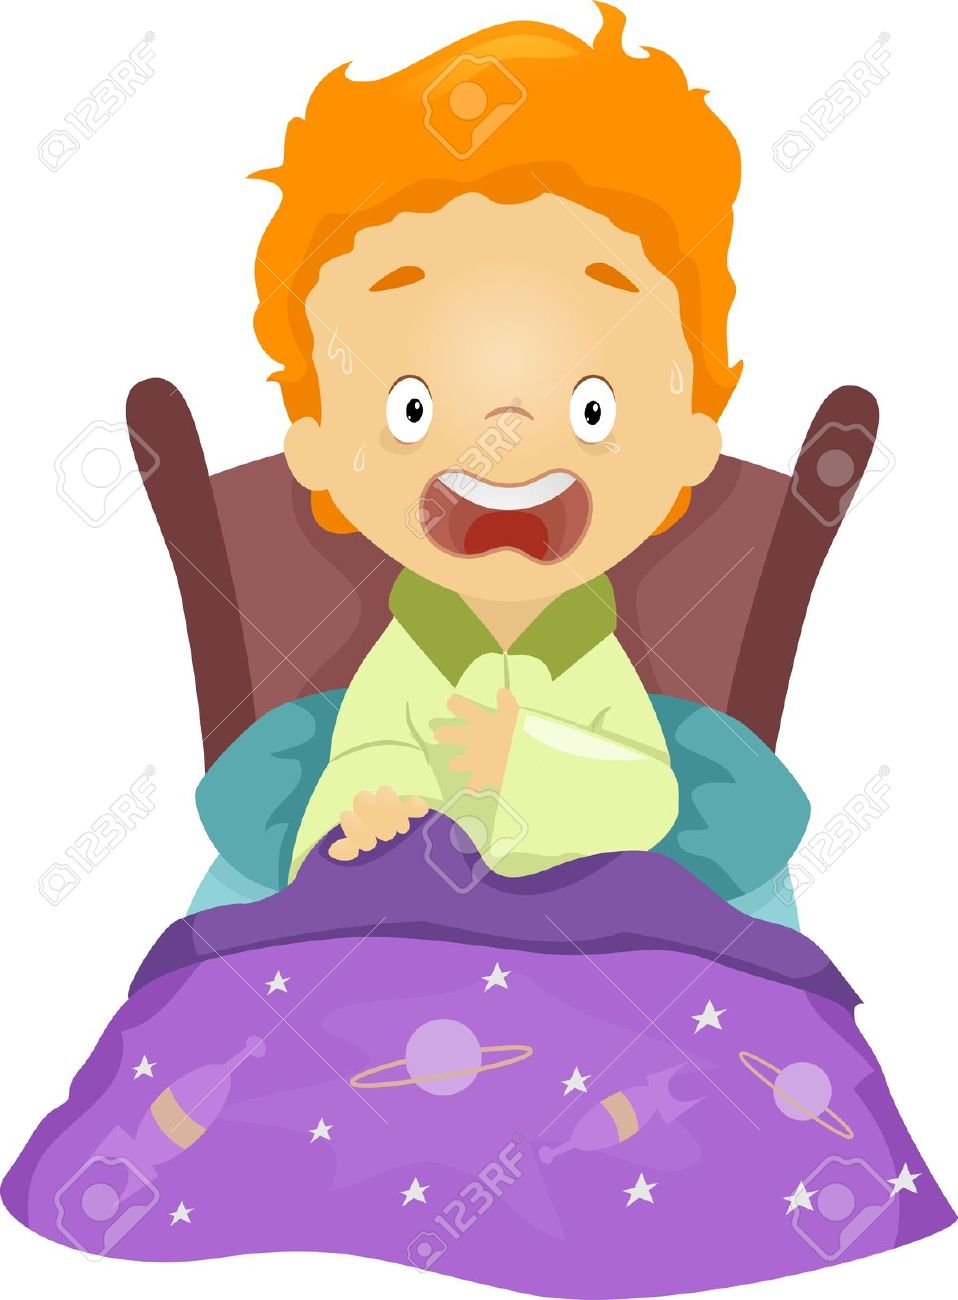 16174424-illustration-of-a-boy-waking-up-from-a-nightmare-stock-illustration-child-cartoon-frightened